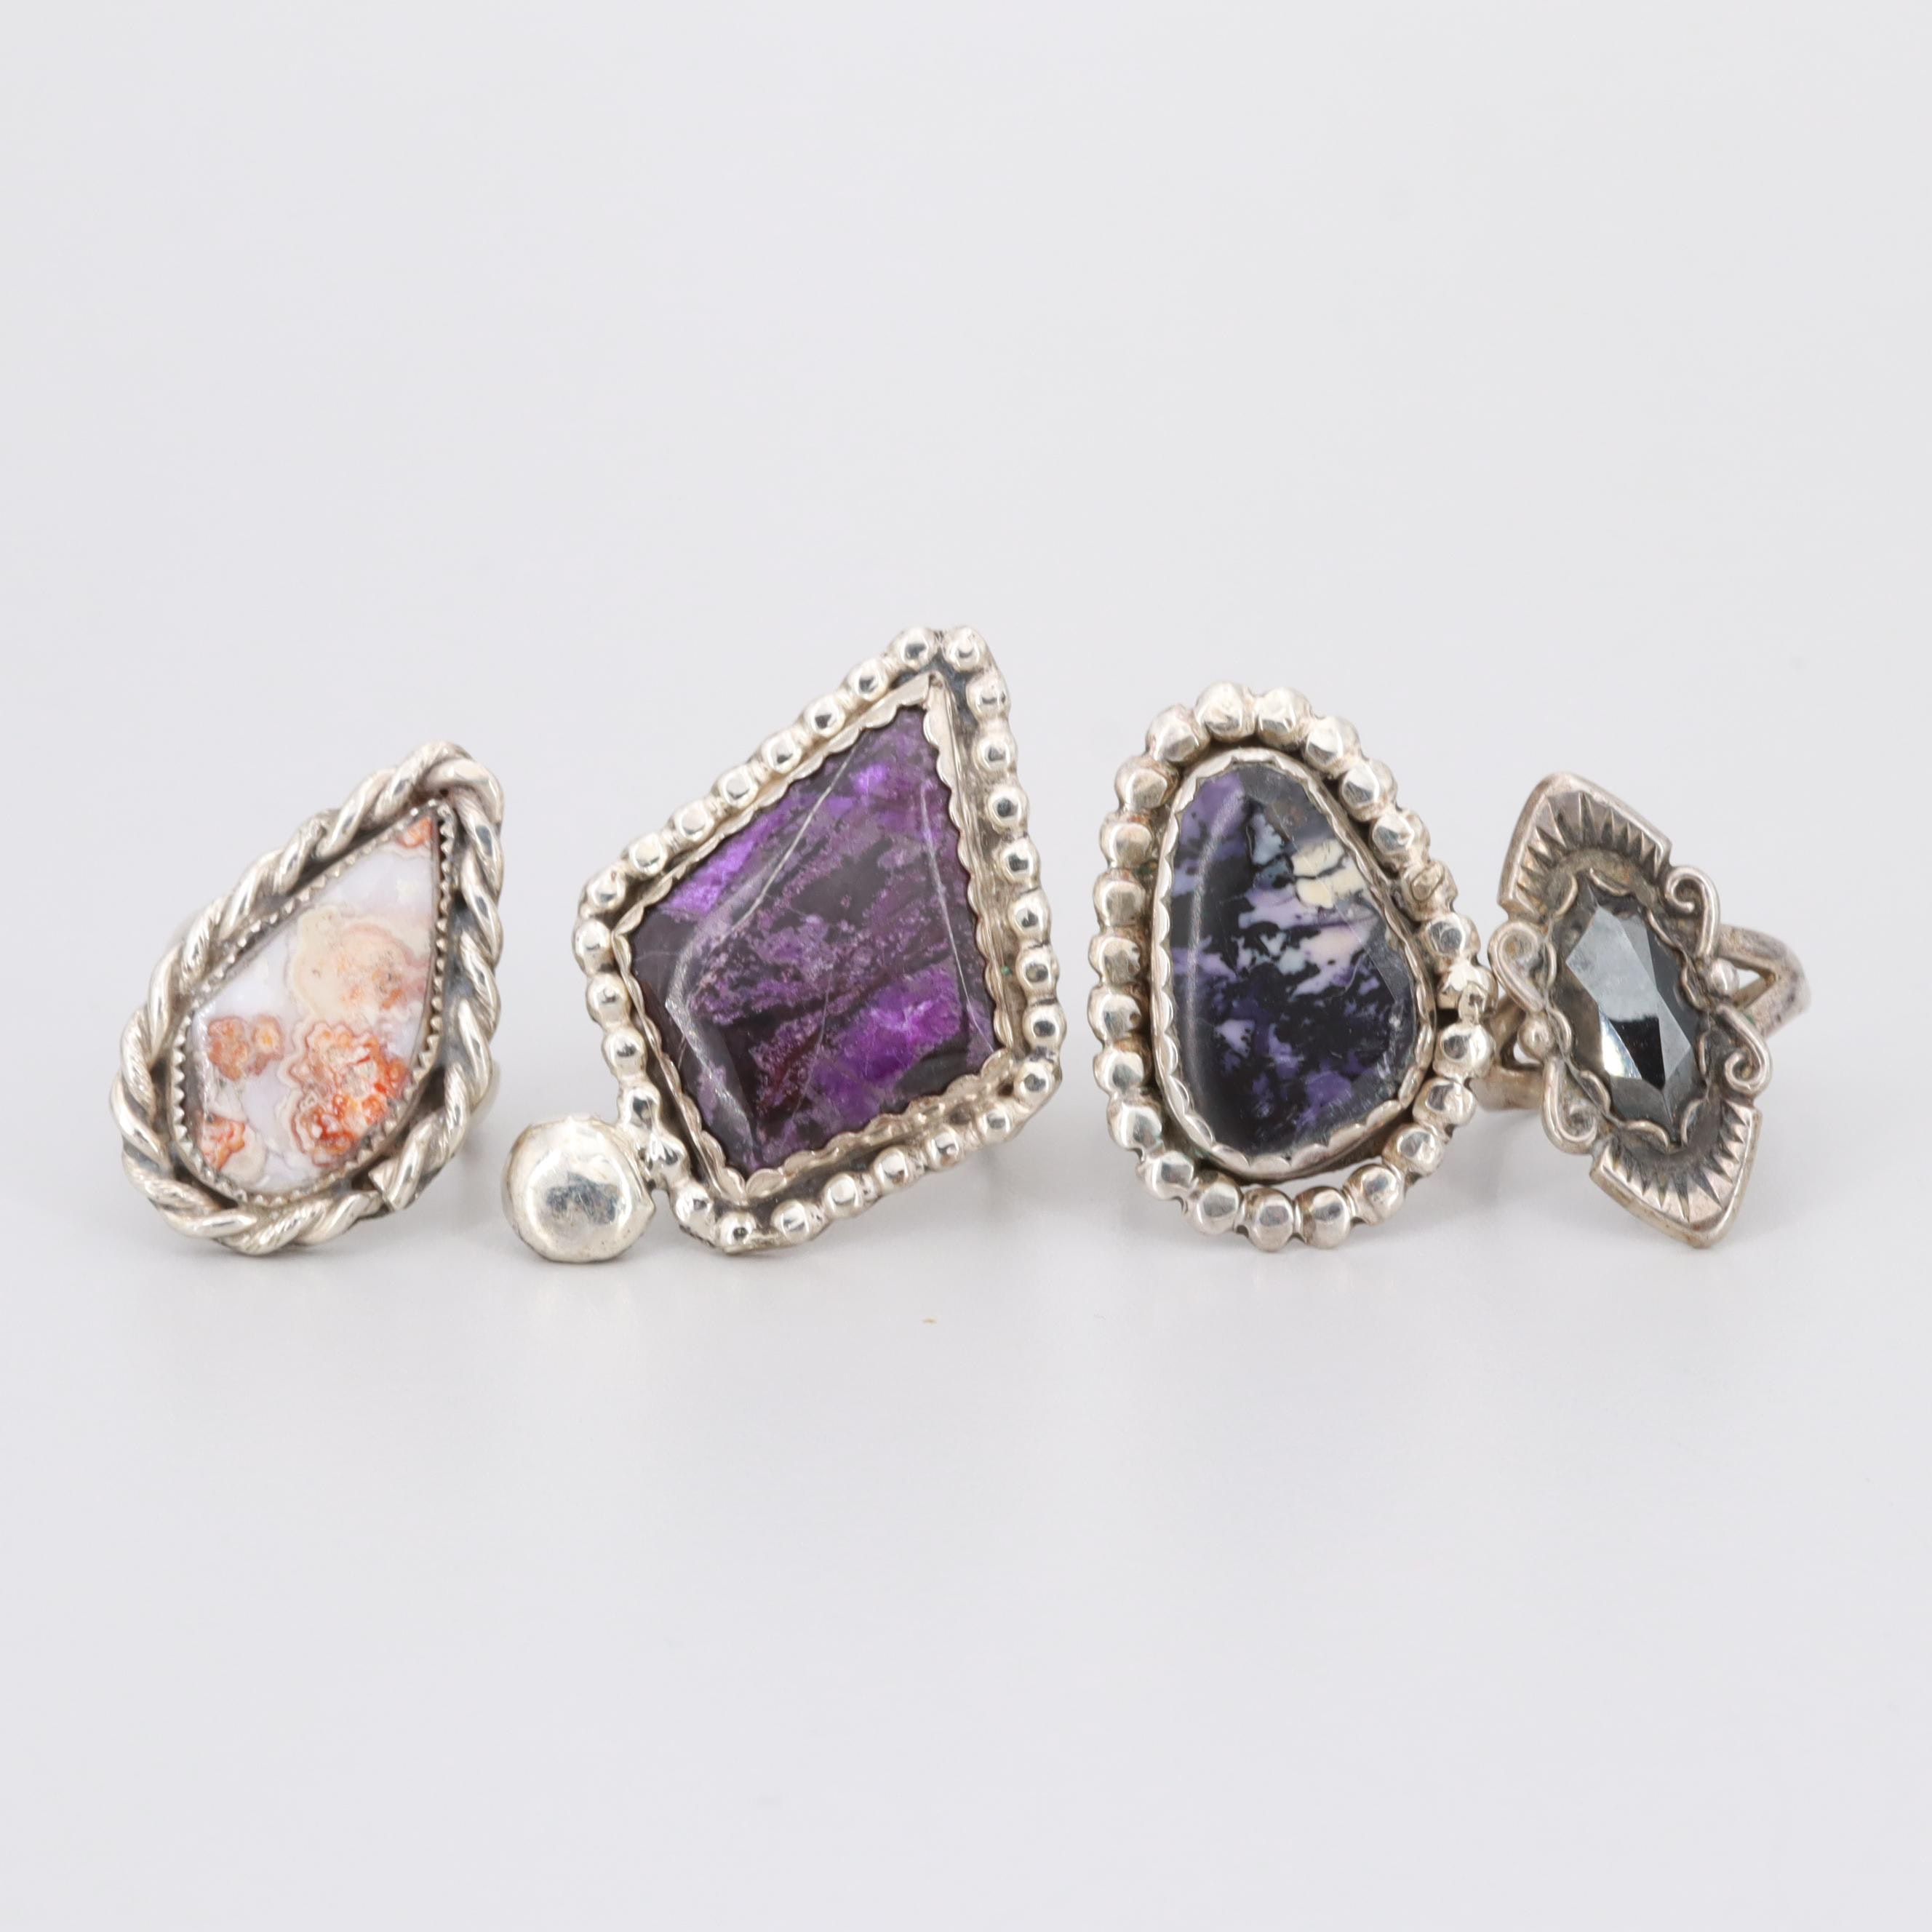 Sterling Silver Sugilite, Agate and Hematite Rings Including Bill K